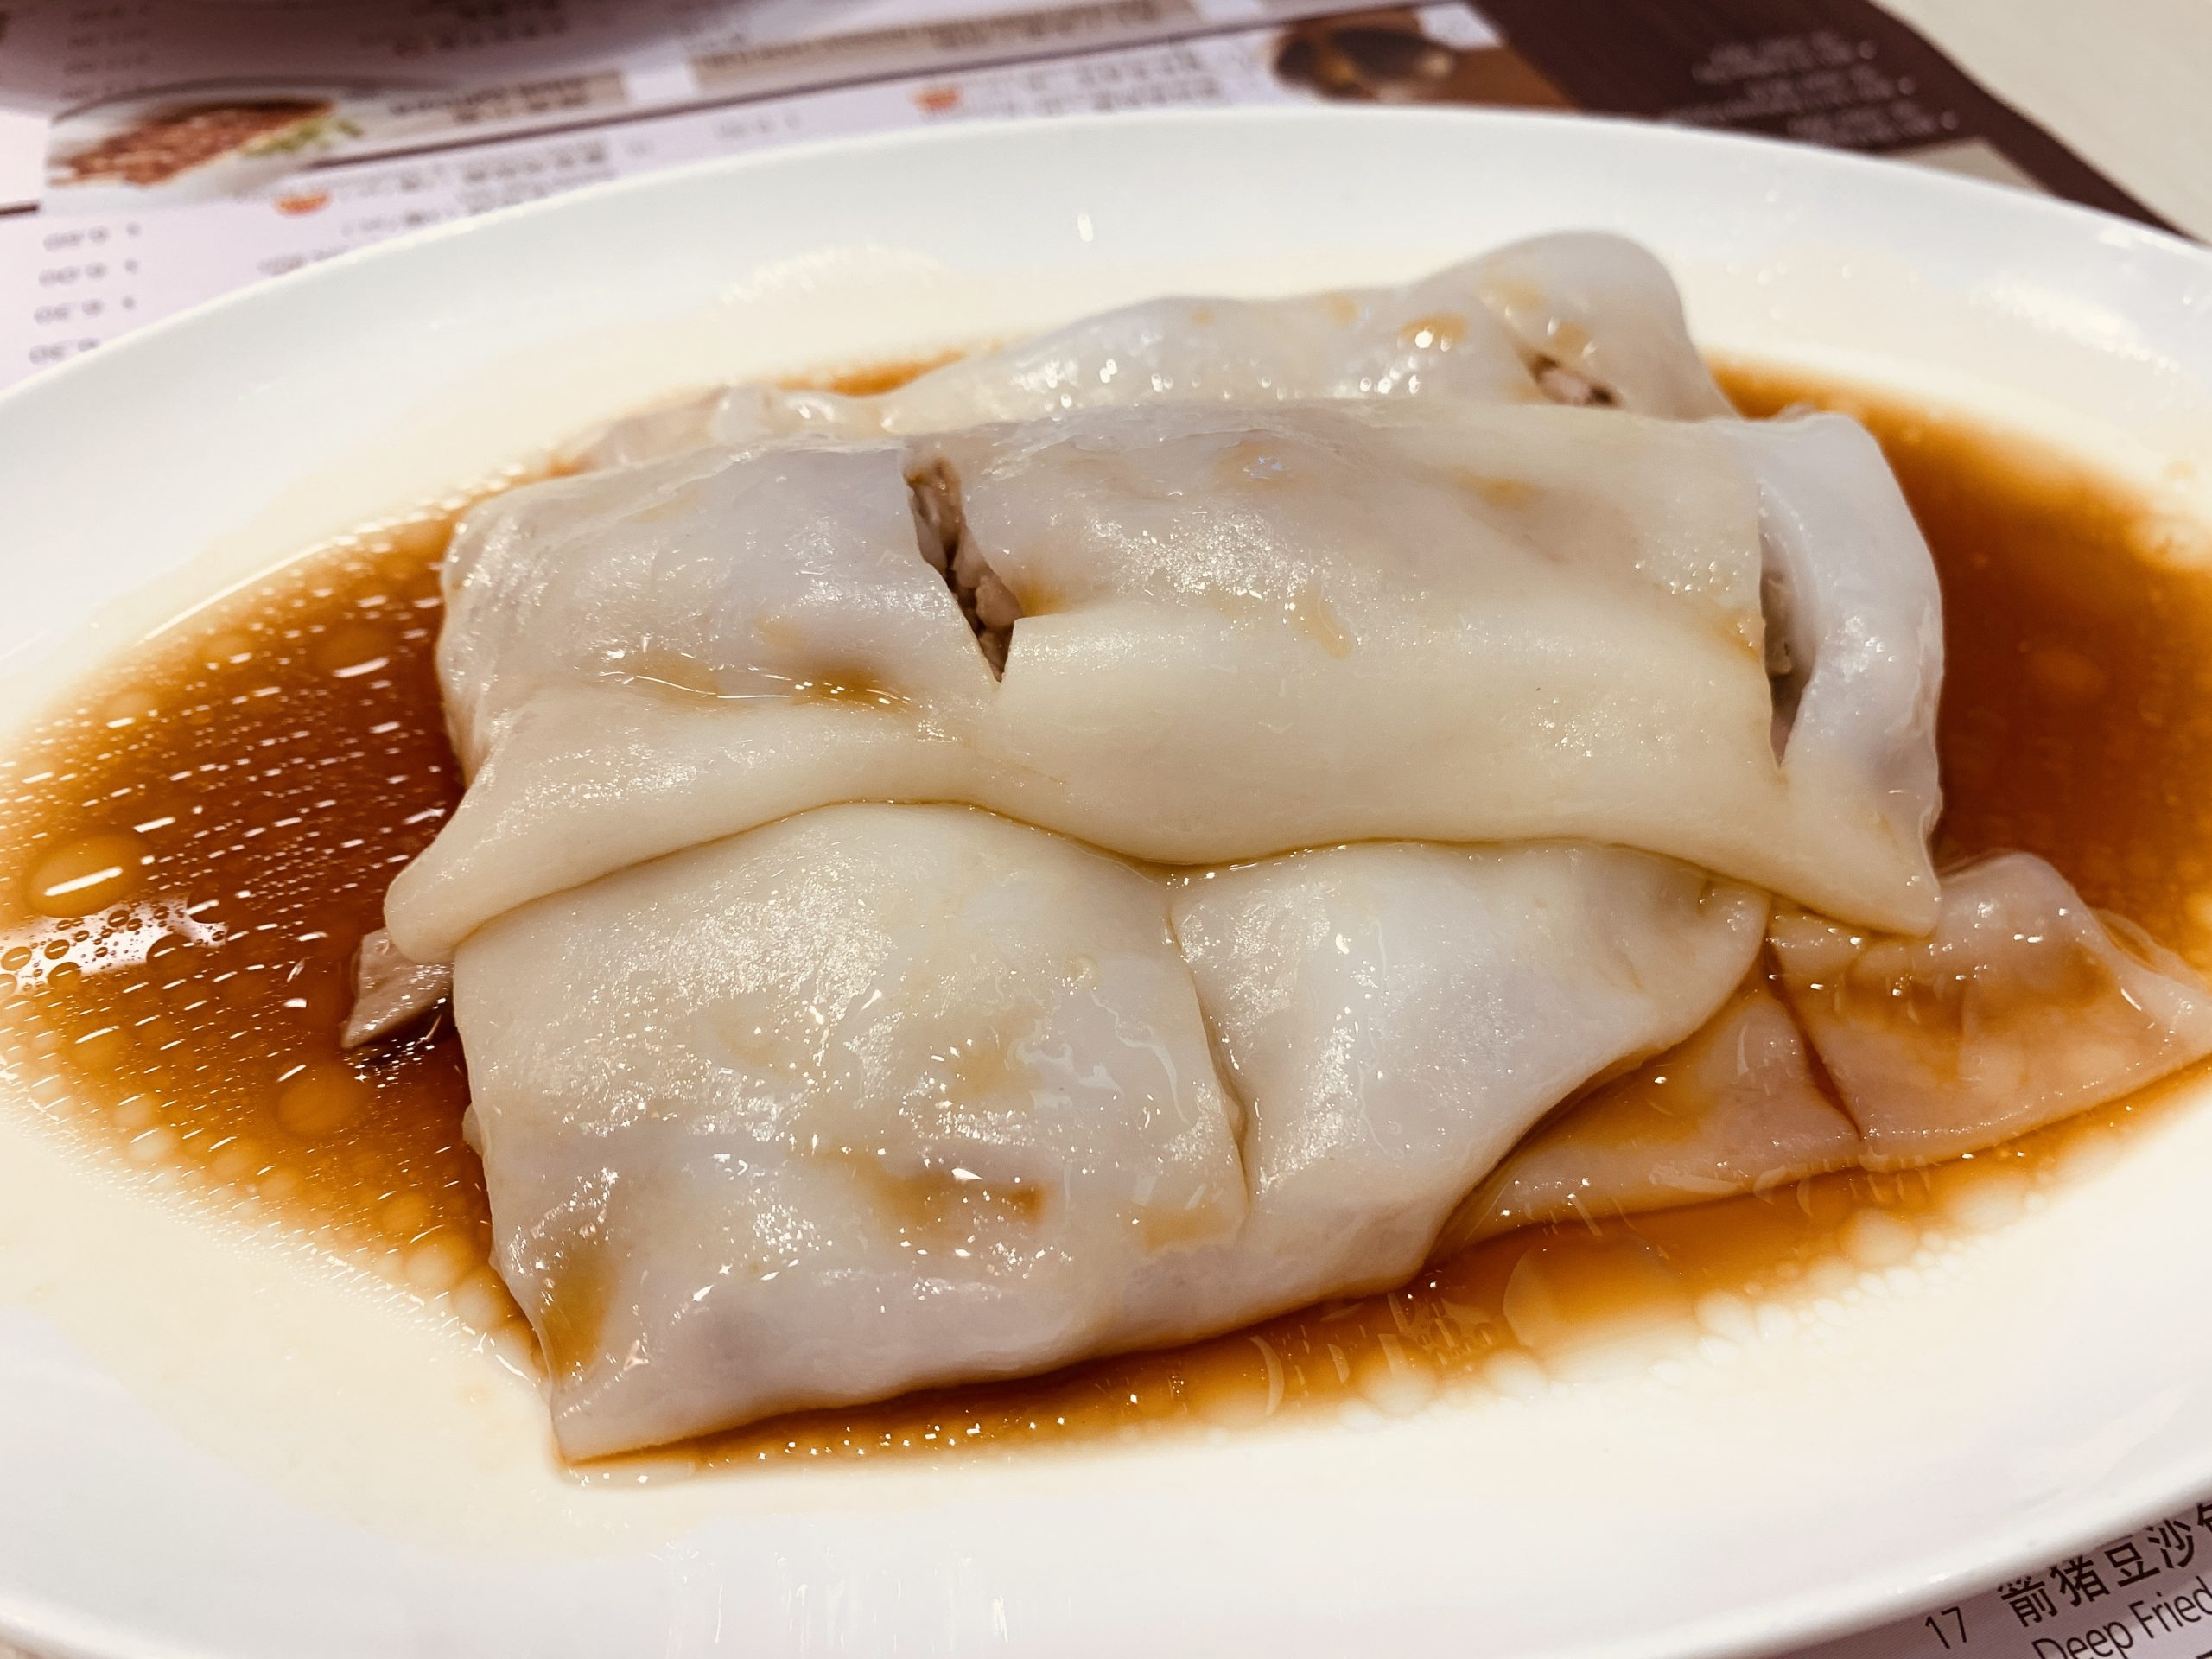 Treasures Yi Dian Xin - Steamed Rice Roll with Roasted Duck